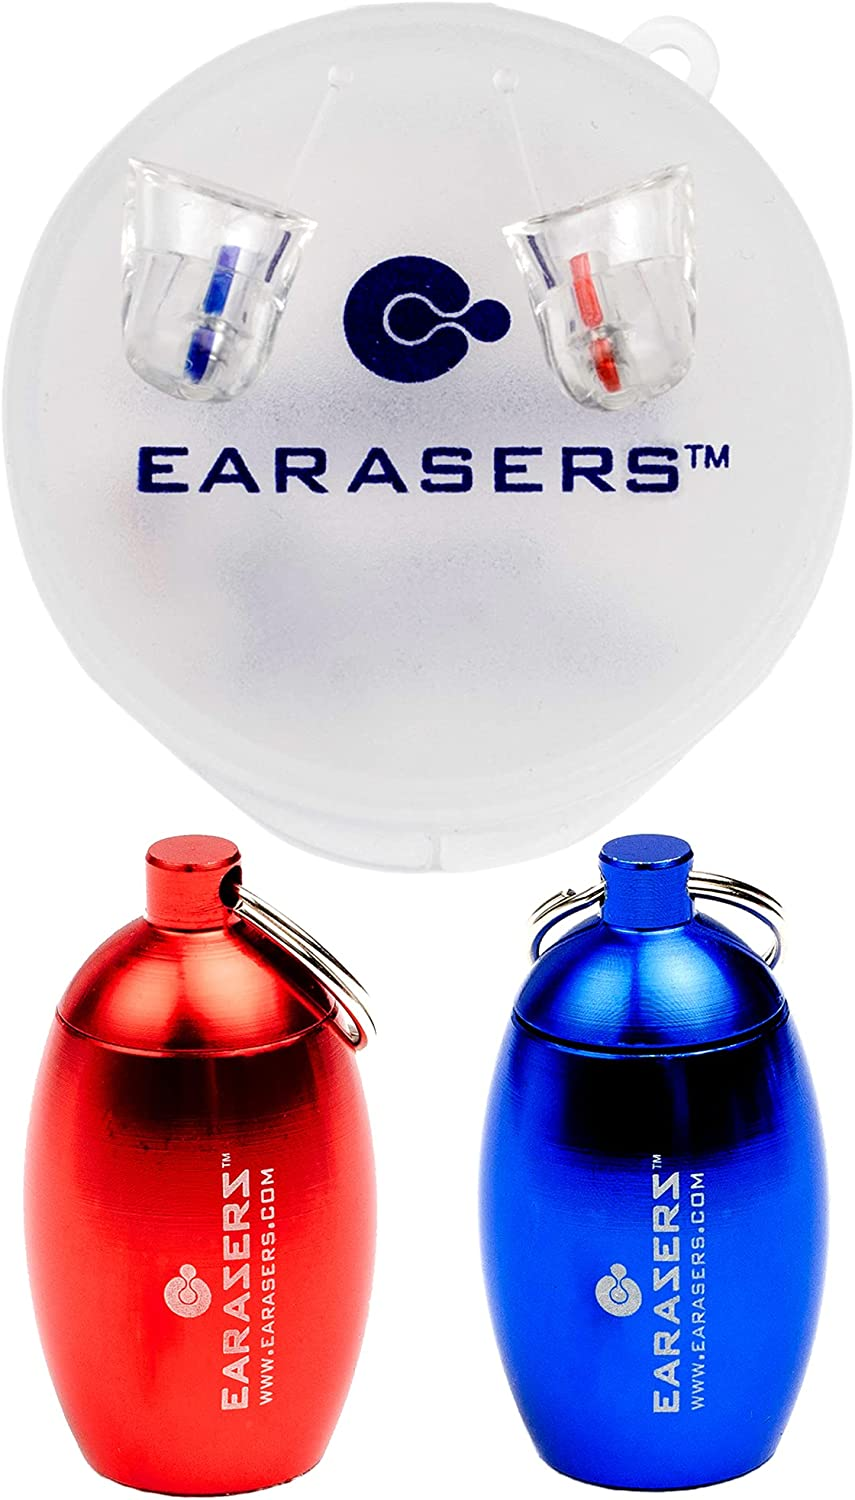 Earasers Musicians Plugs Medium with Waterproof Stash Can Case(Assorted Colors, Red or Blue)